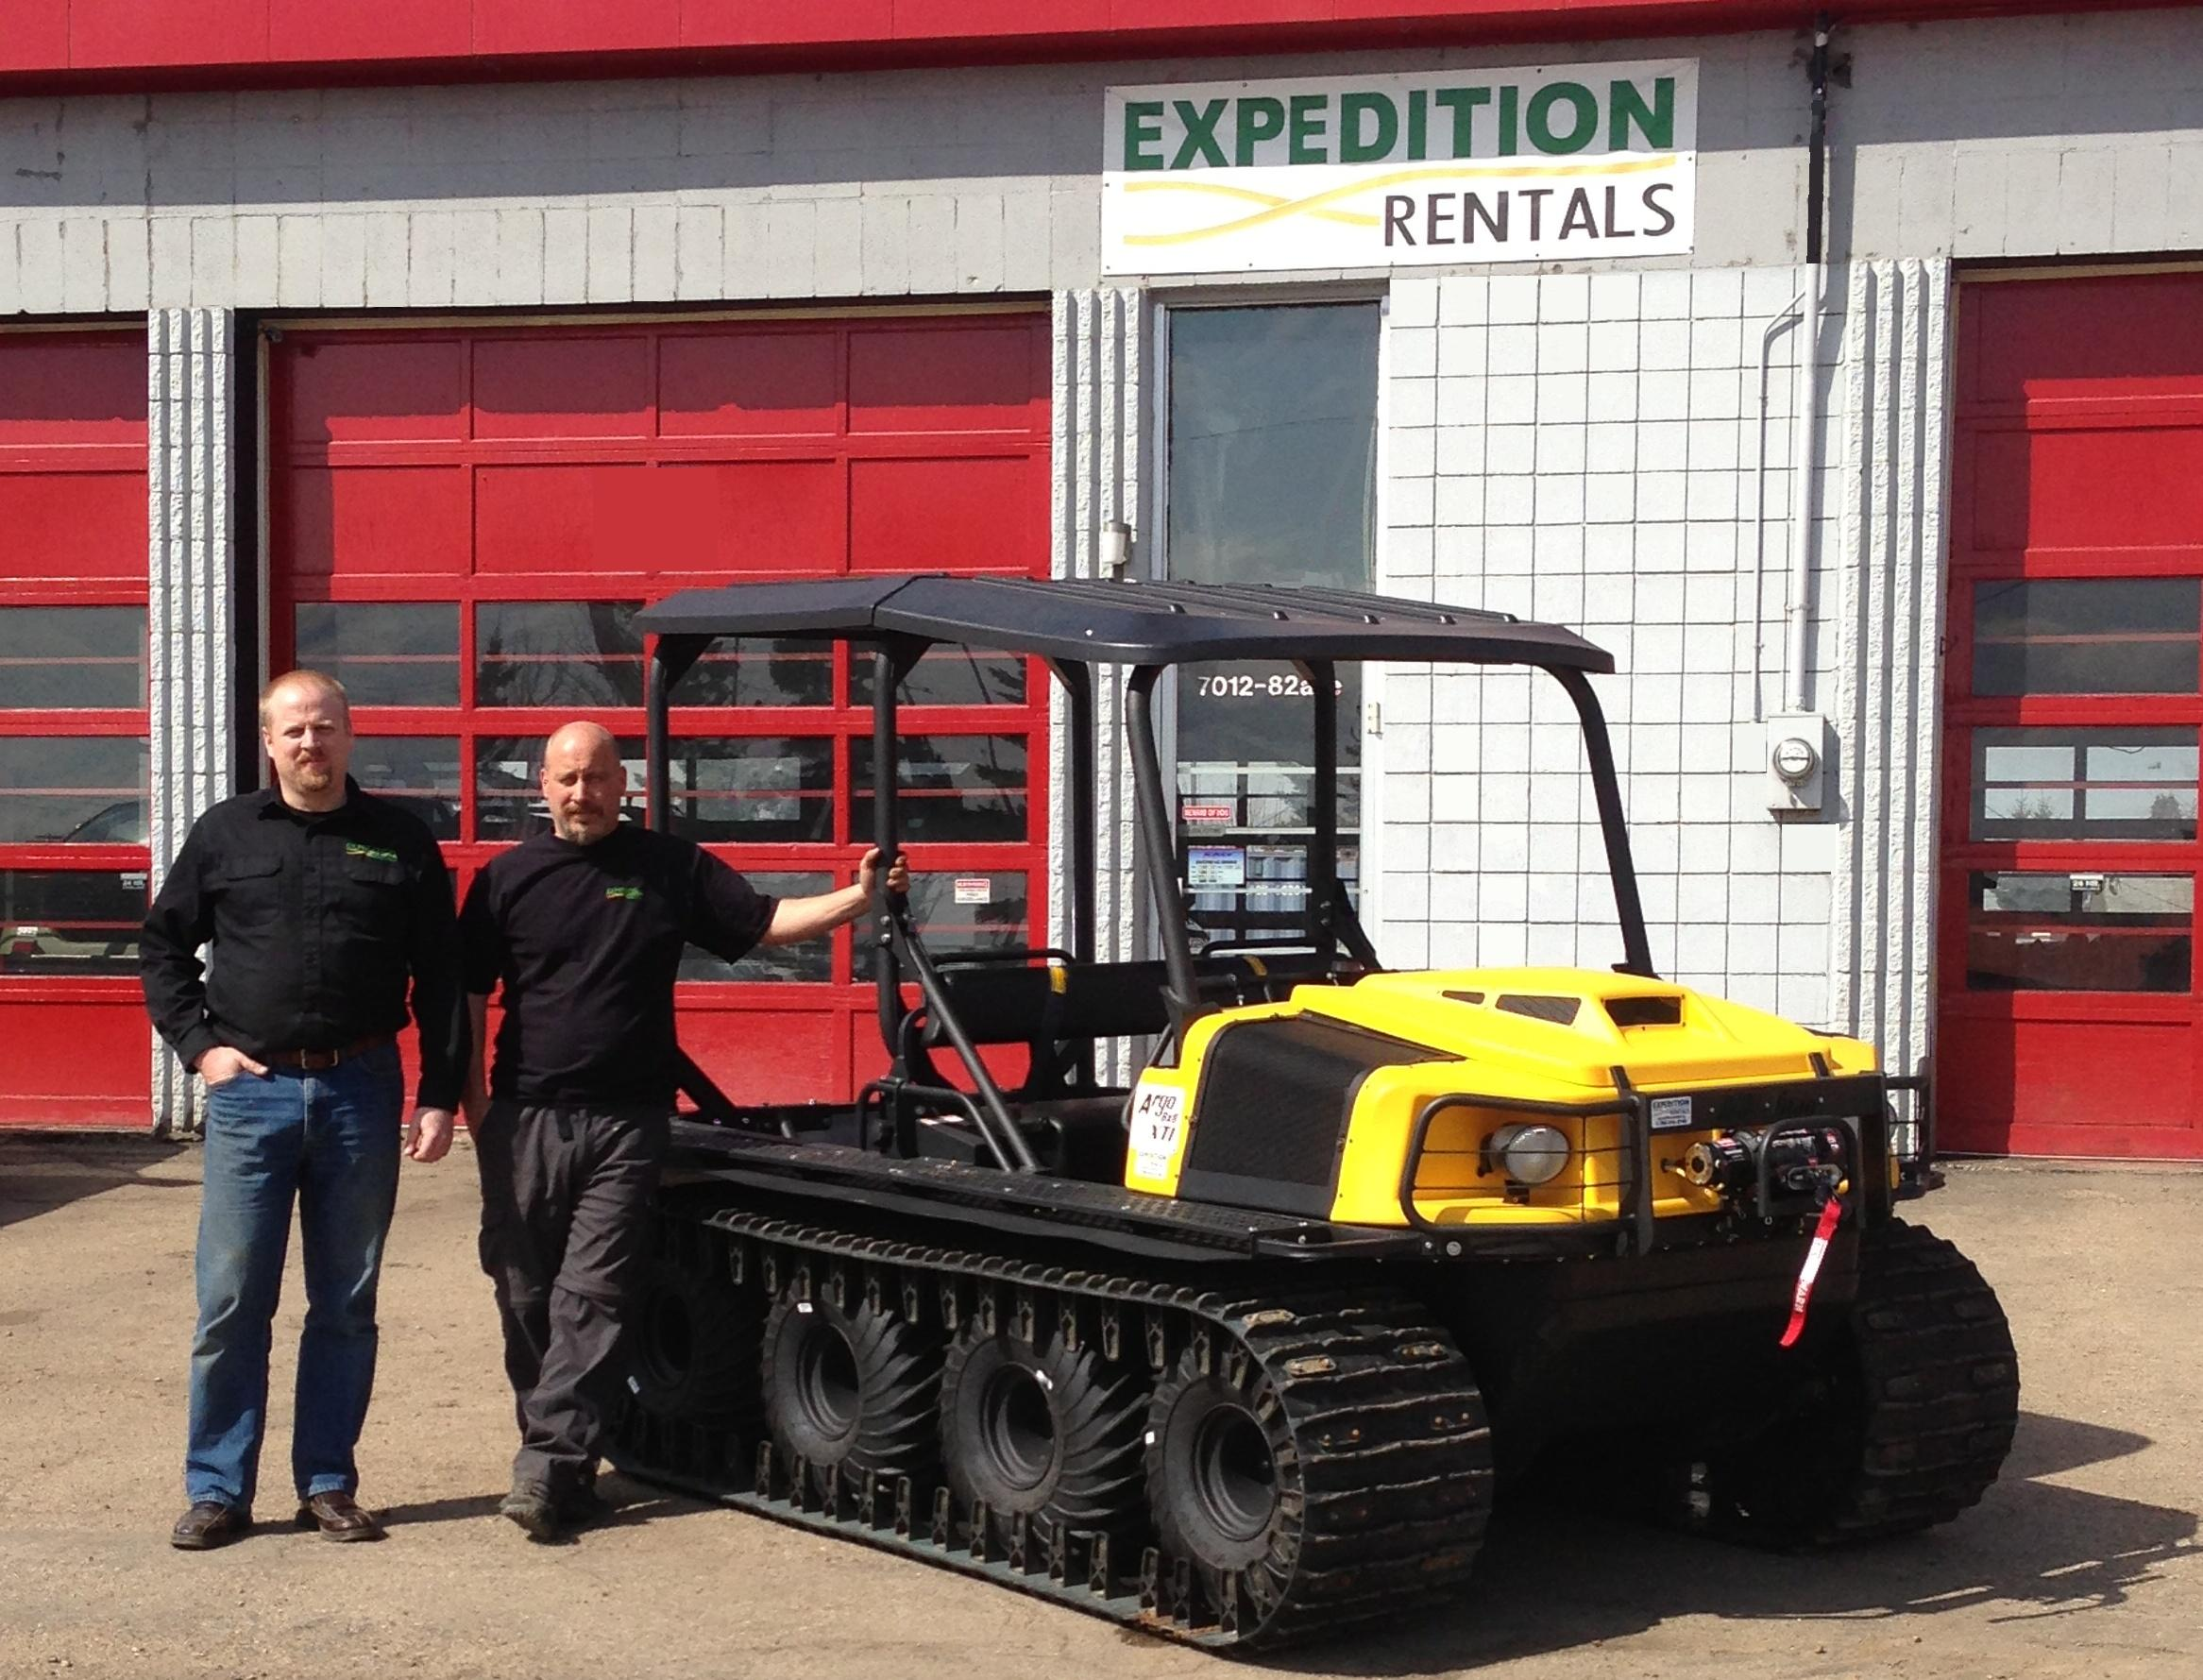 Expedition Rentals' Richard Wharmby, (l) and Wayne Moc